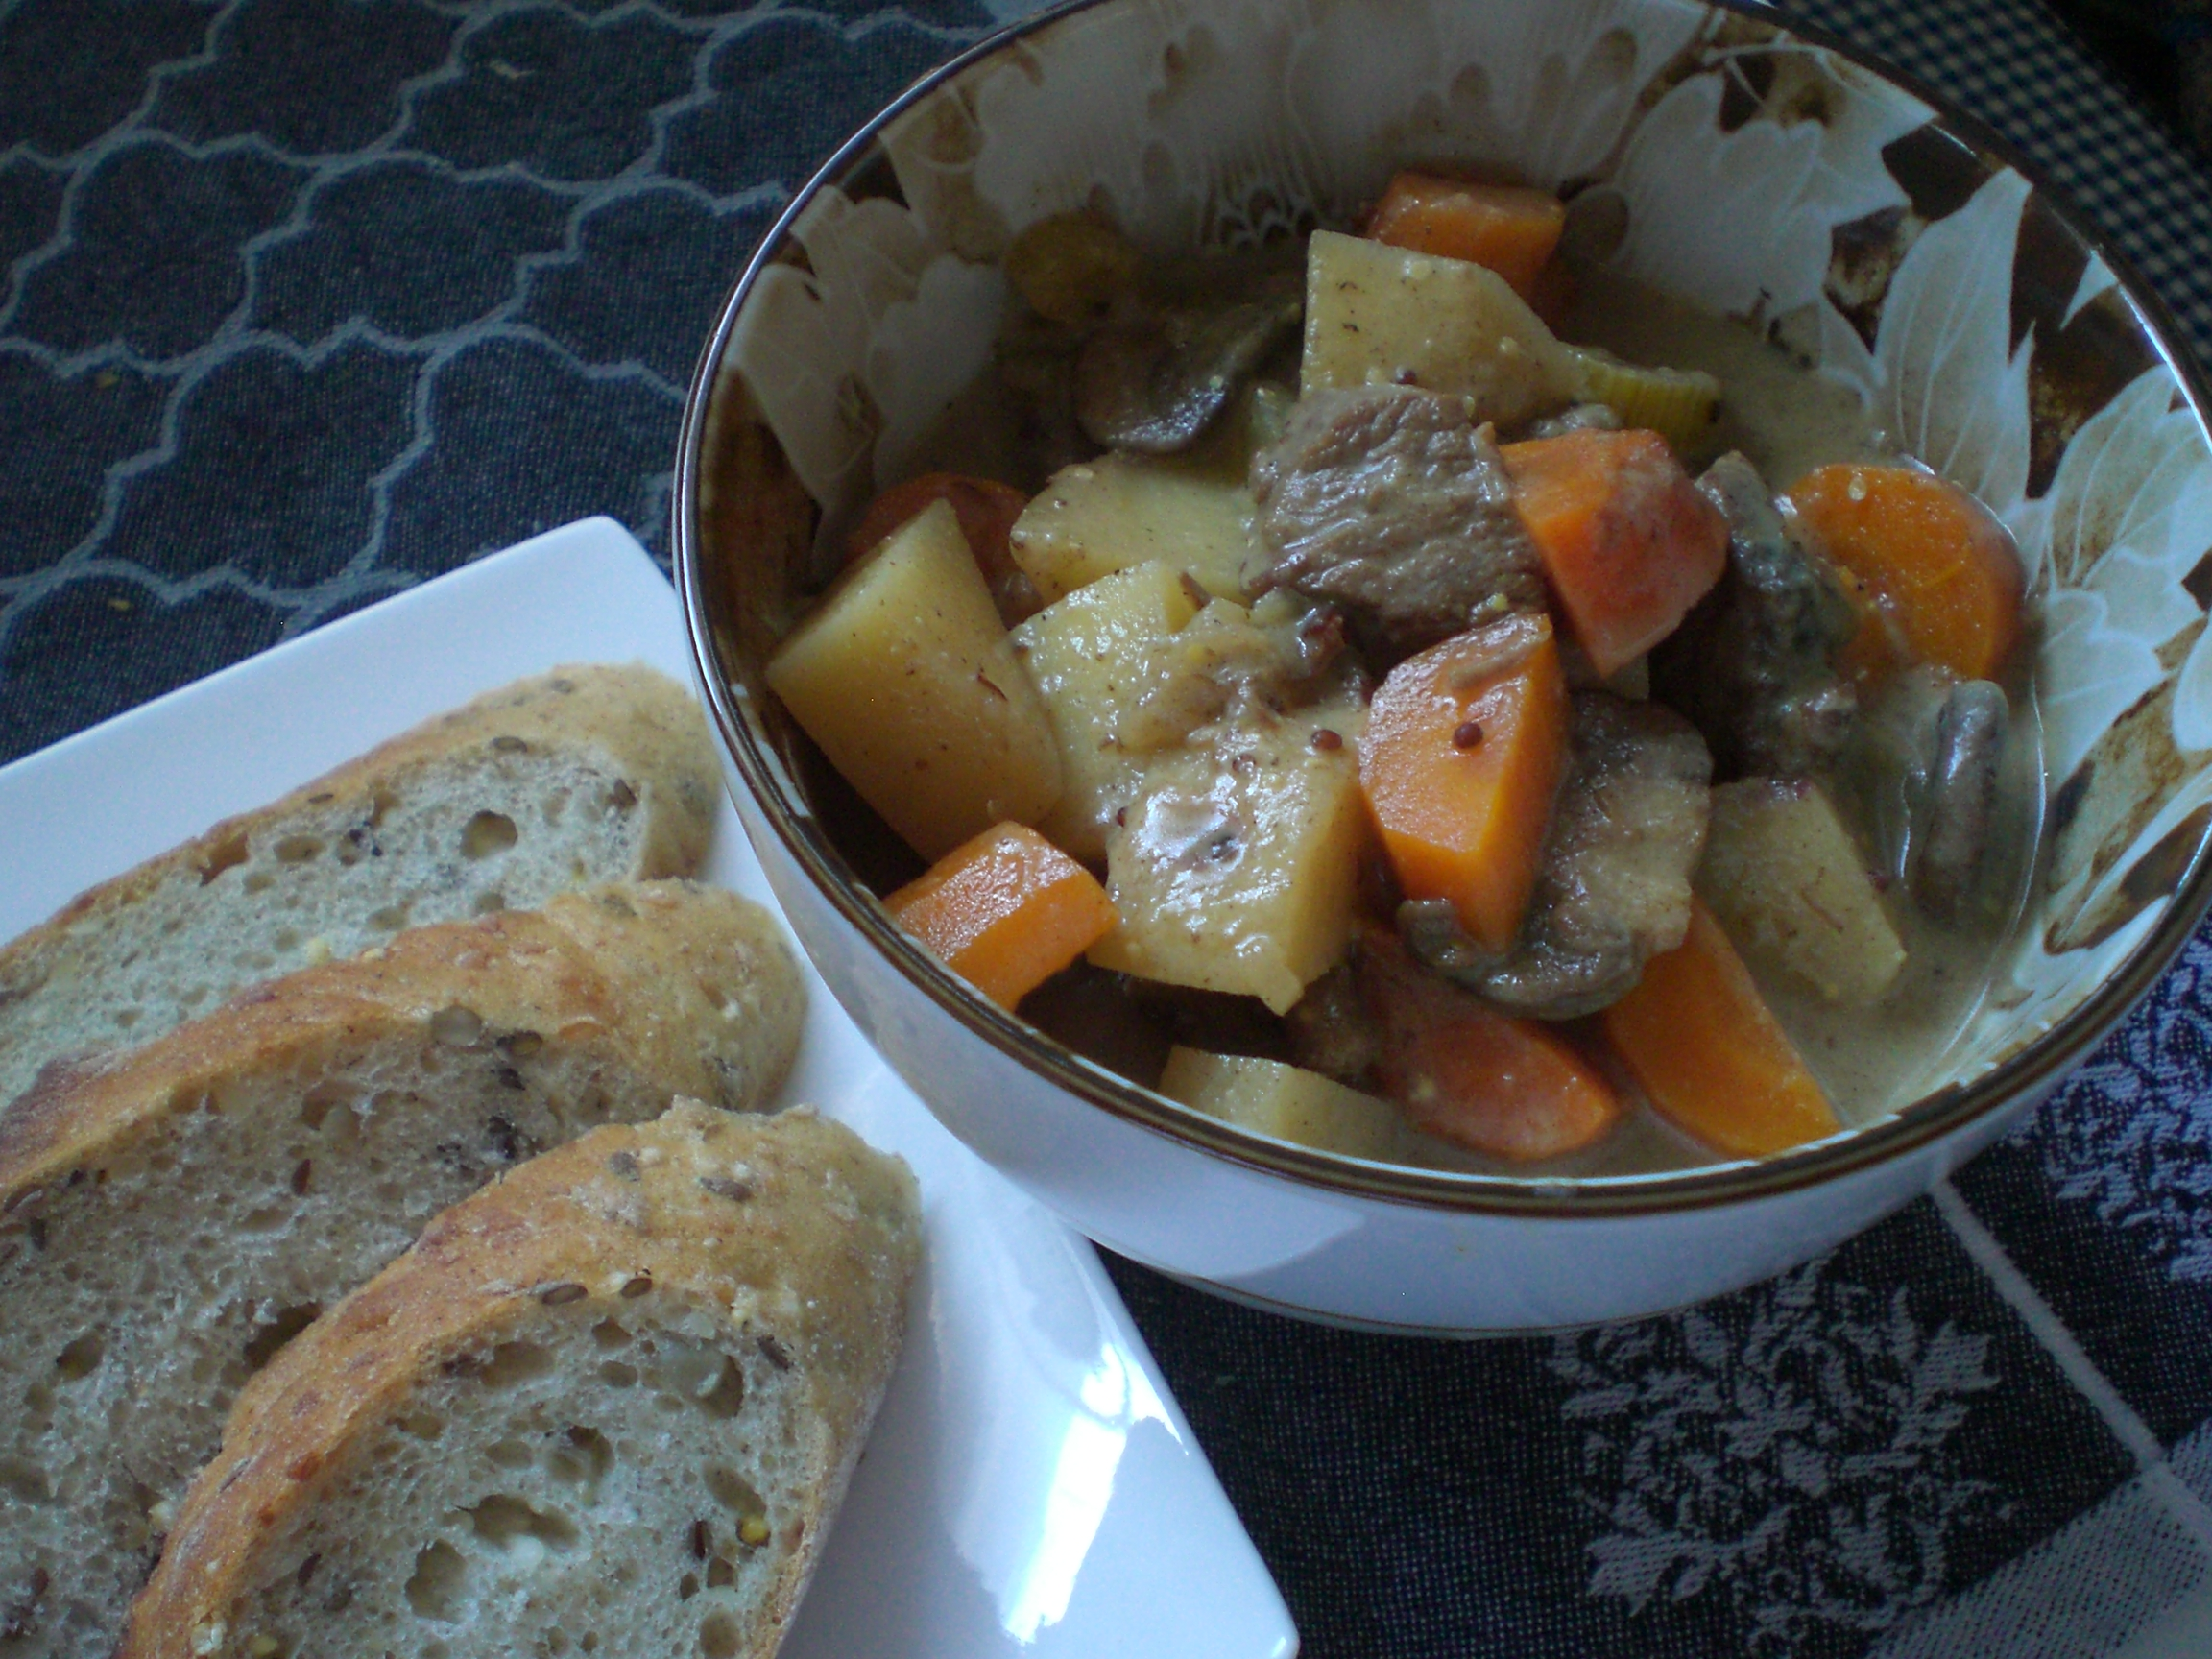 ... 15, 2014 September 15, 2014 christina135 Beef , Dinner , Soup and Stew